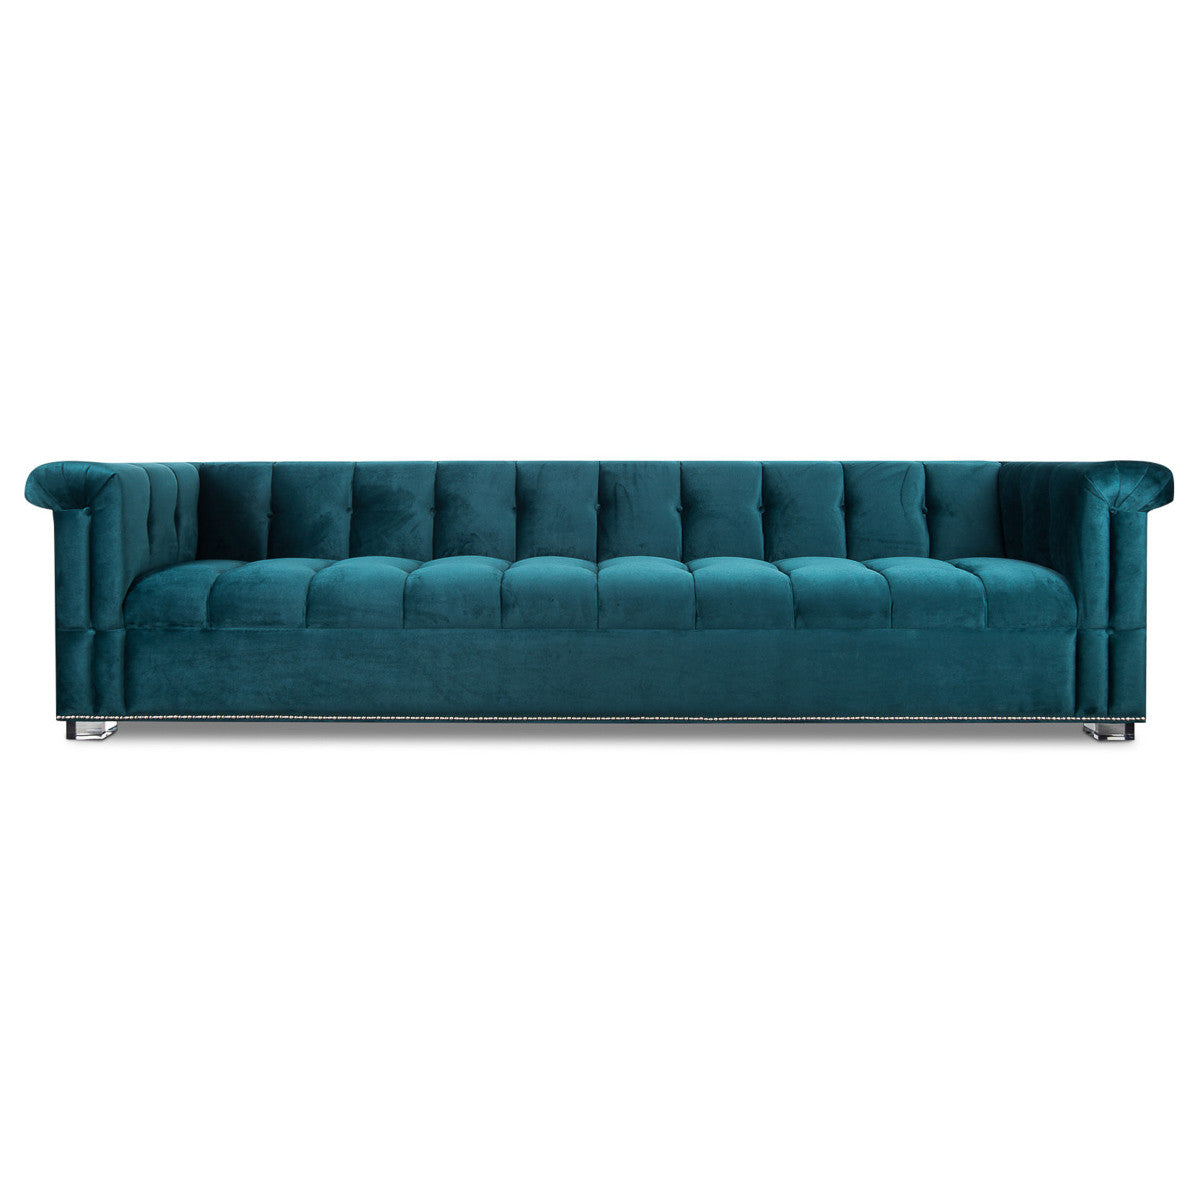 Dean Martin Sofa In Mystere Peacock